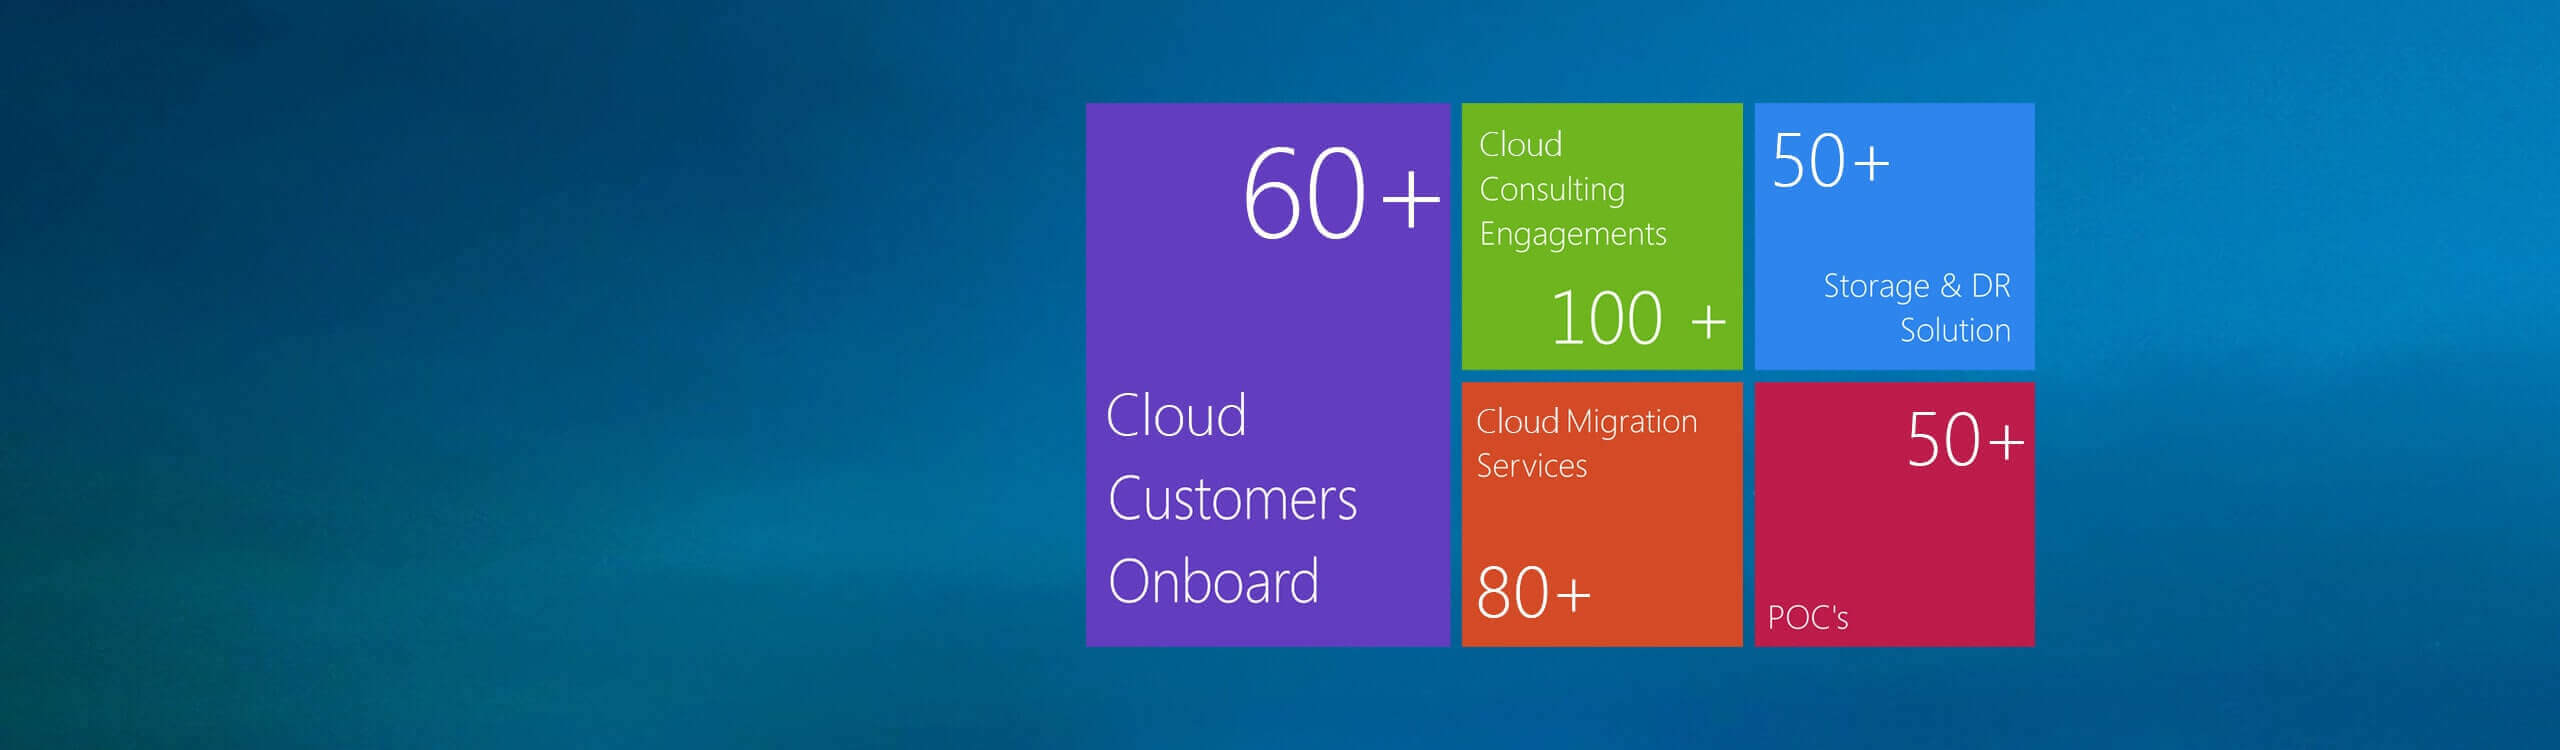 Competencies on Cloud